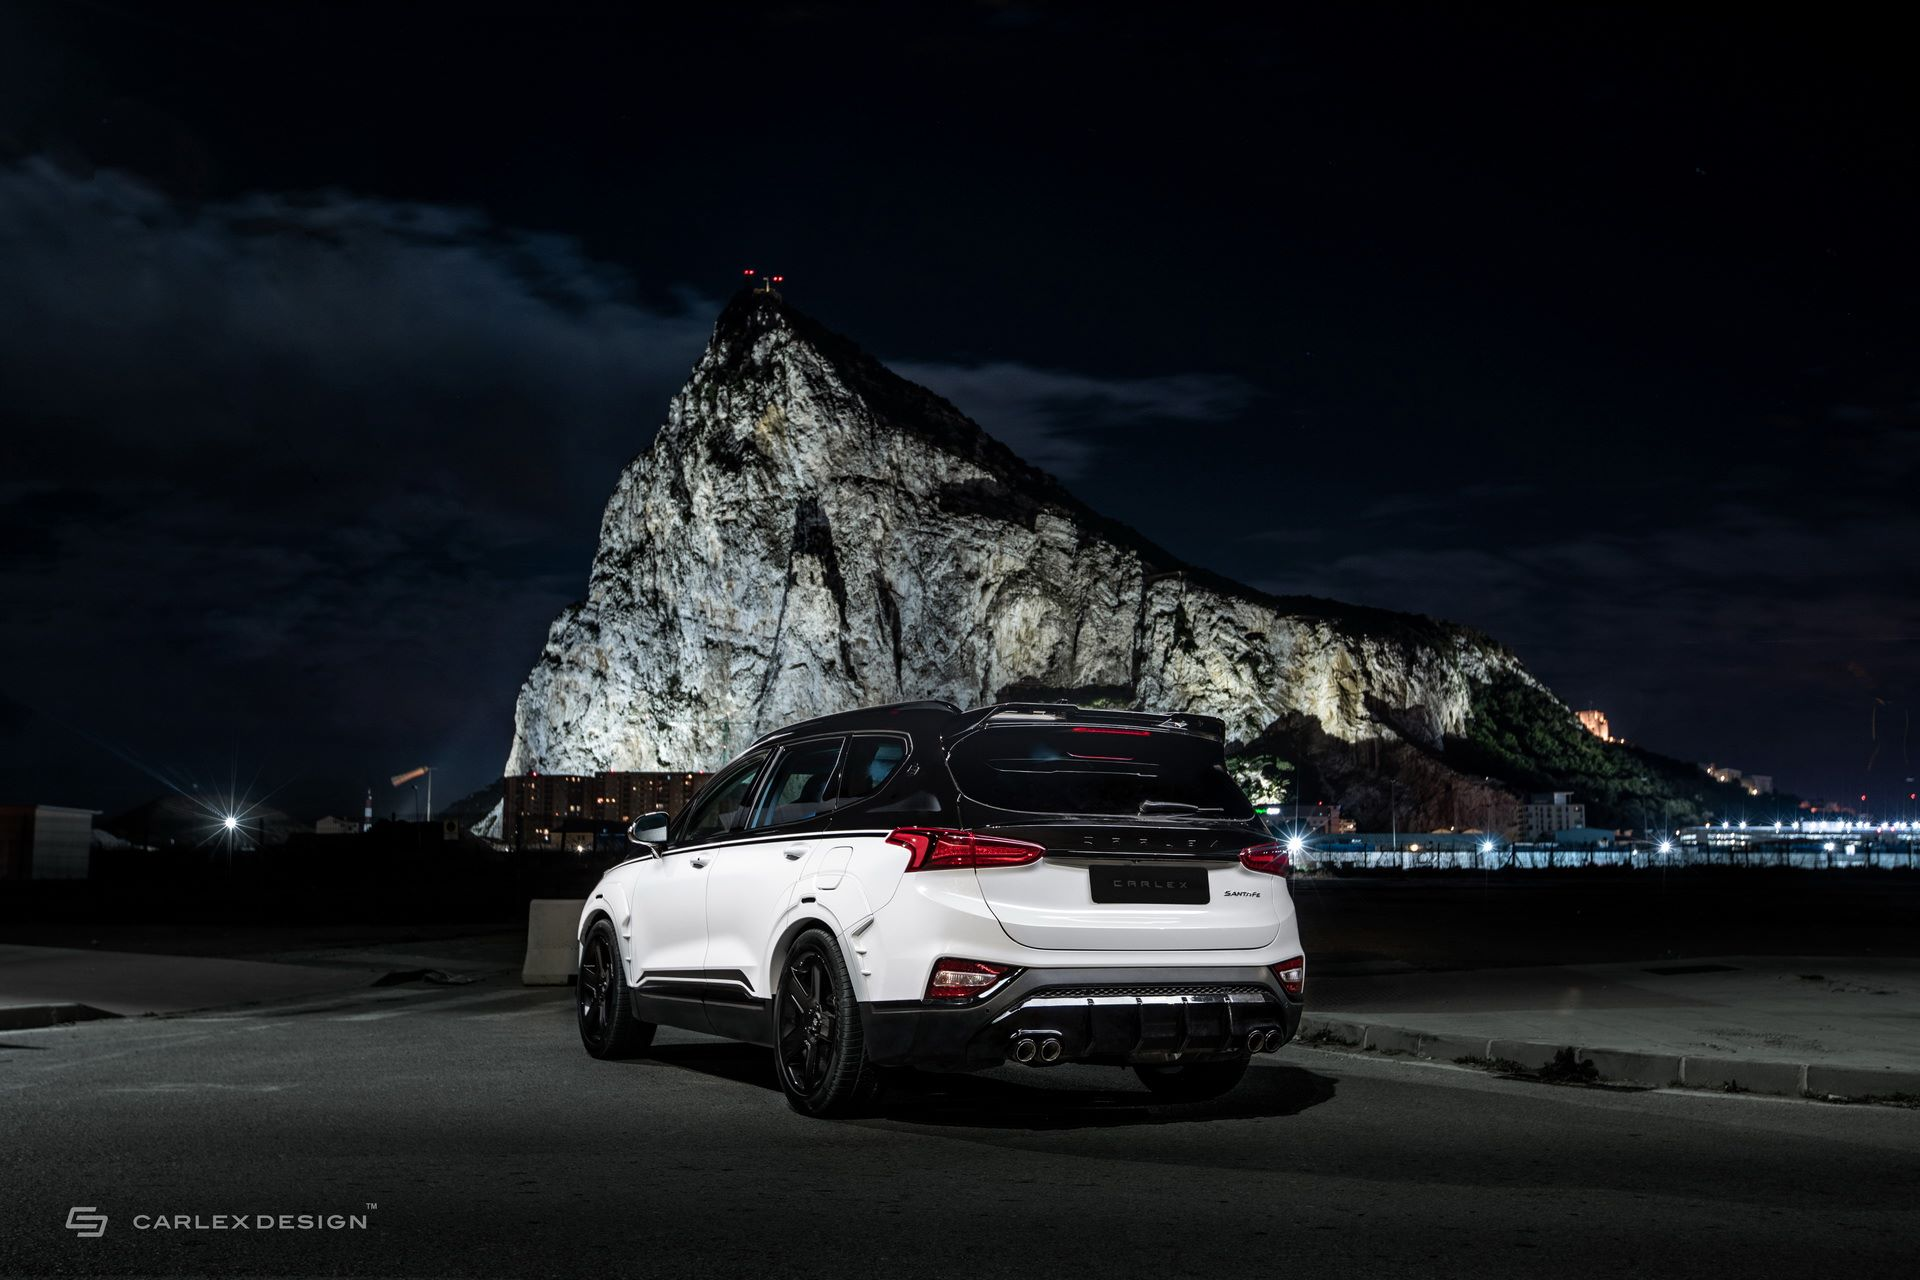 Hyundai-Santa-Fe-Urban-Edition-by-Carlex-Design-41